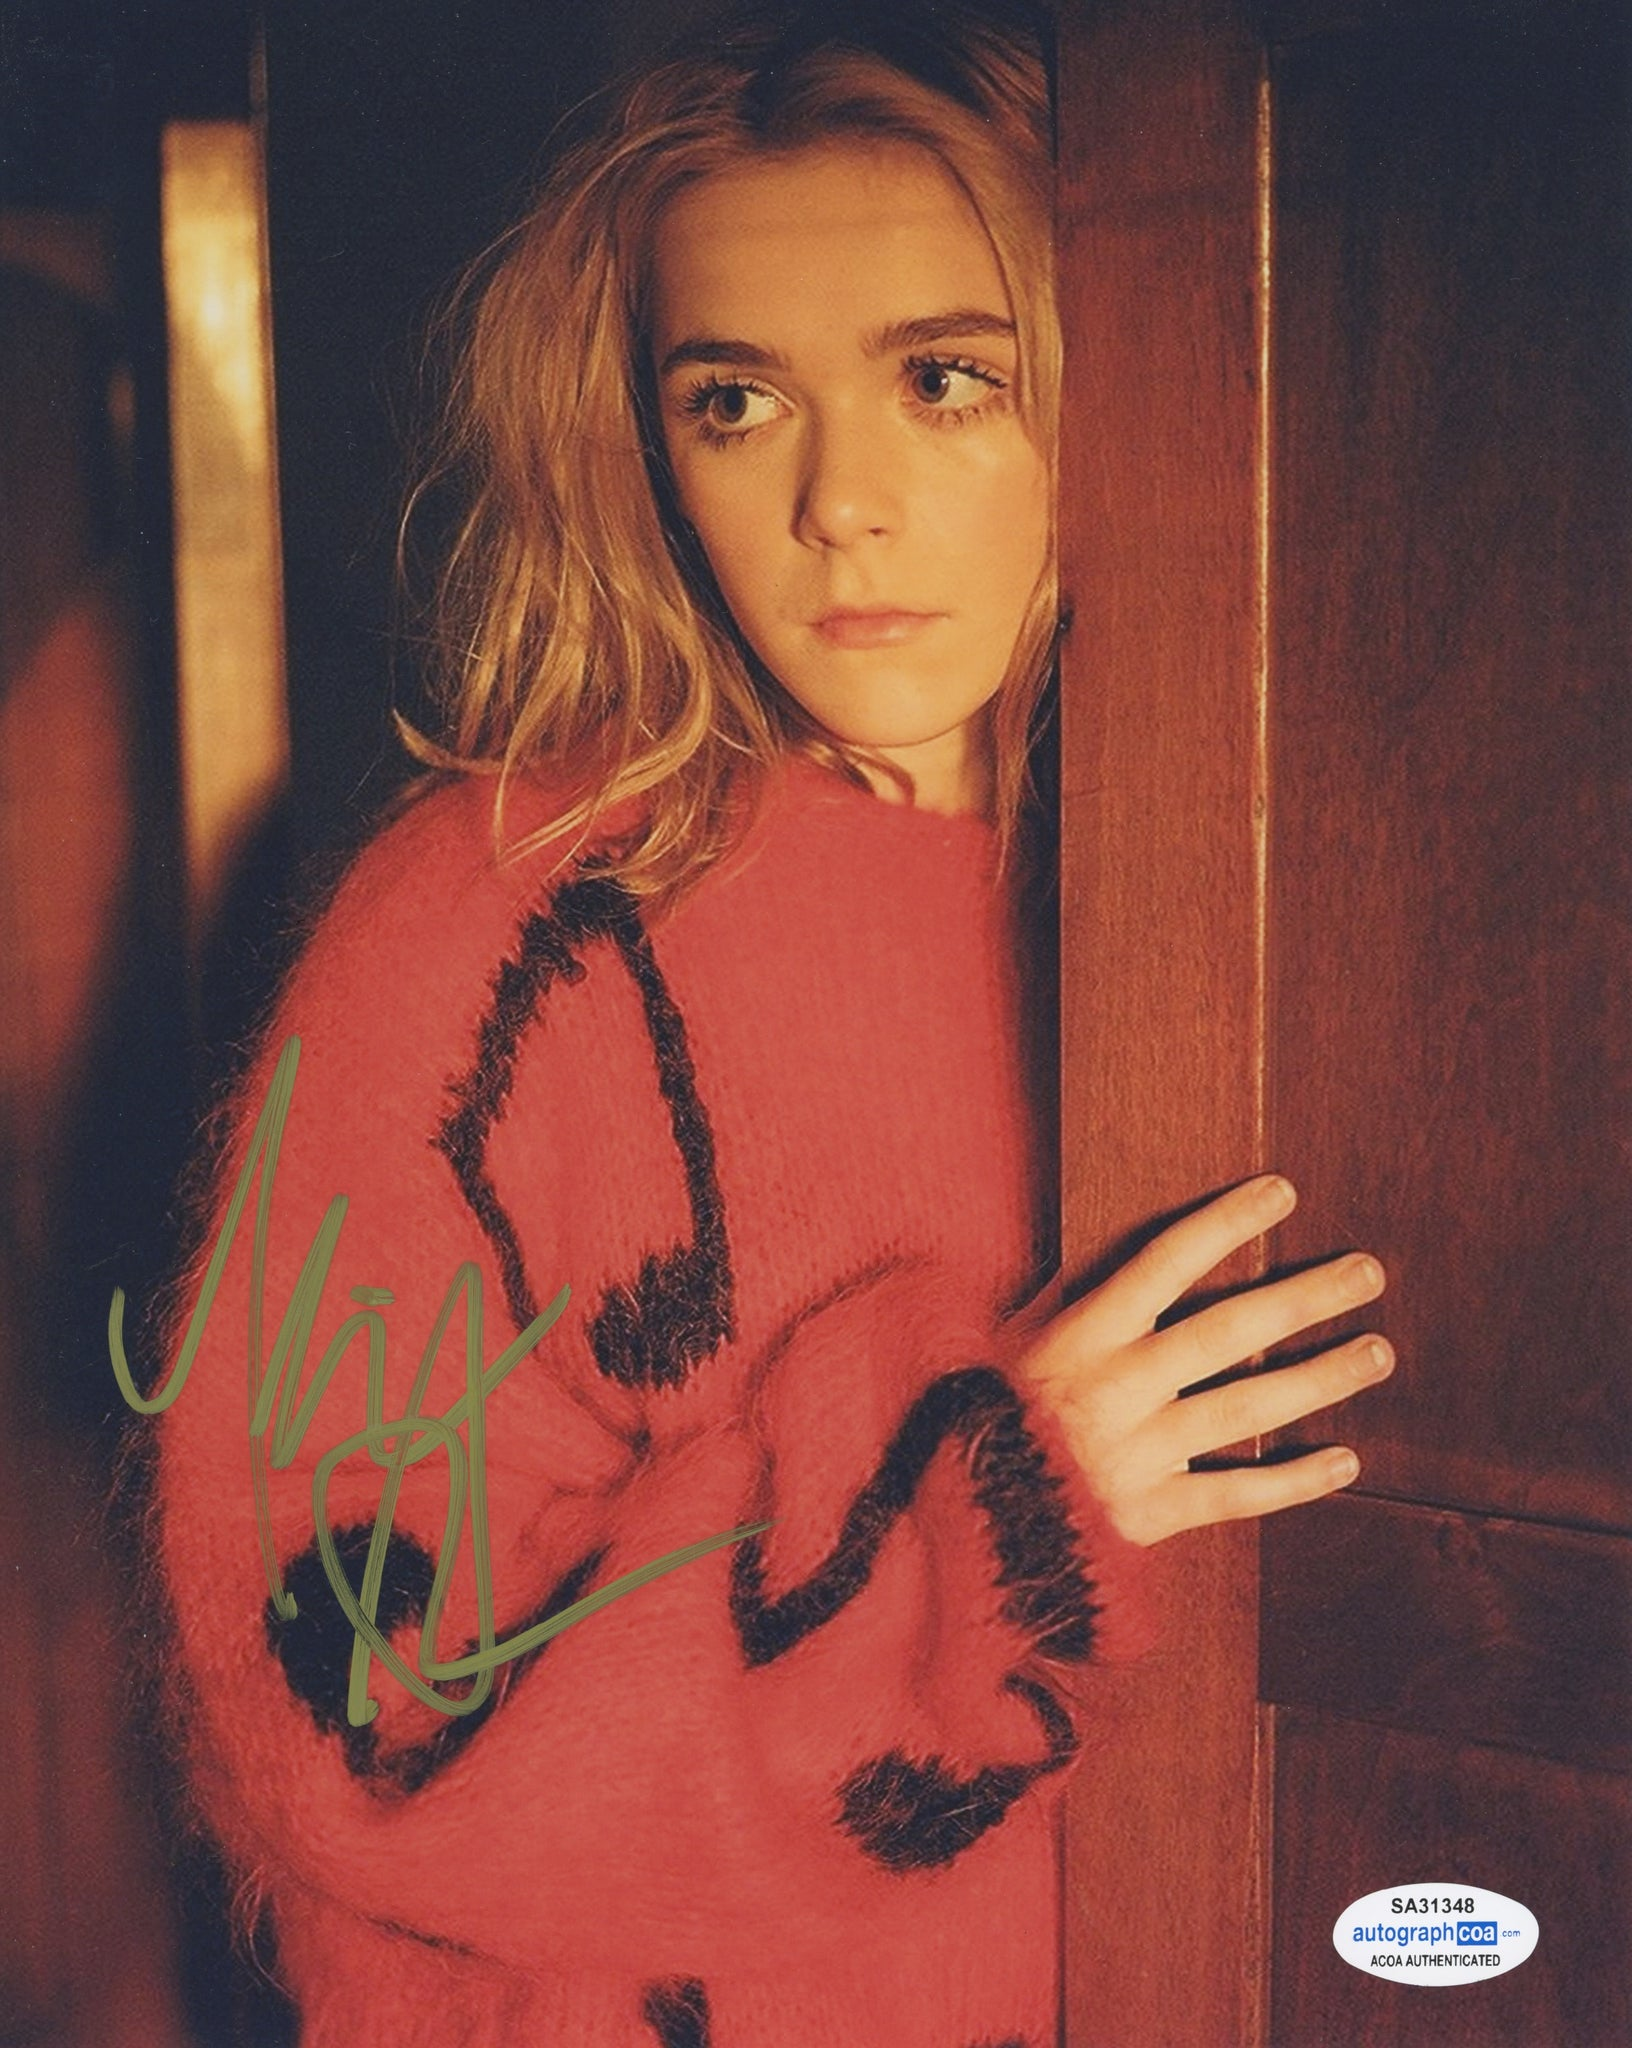 Kiernan Shipka CAOS Sabrina Signed Autograph 8x10 Photo #36 - Outlaw Hobbies Authentic Autographs